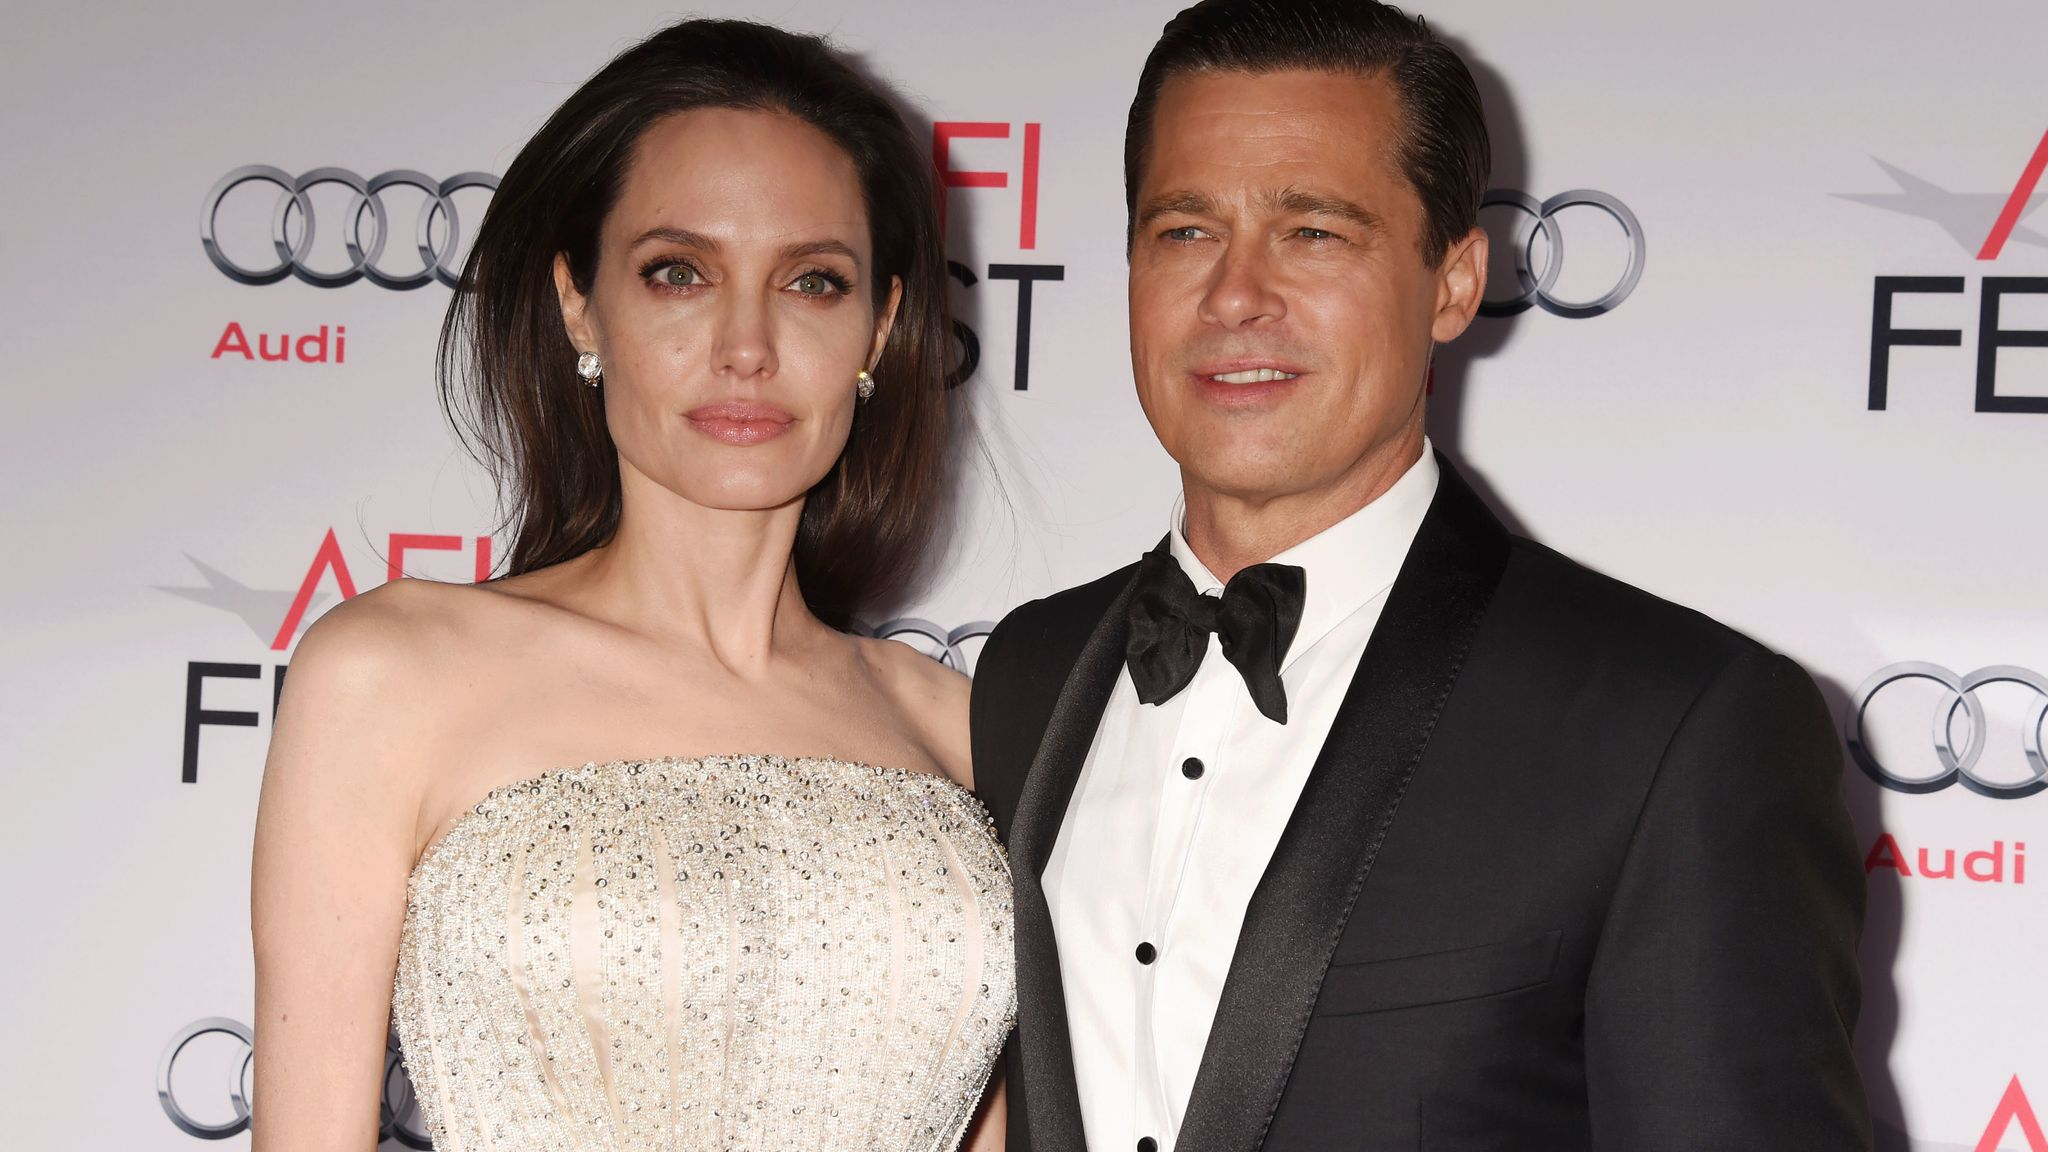 Brad Pitt and Angelina Jolie had Physical Fights over Cheating Affairs